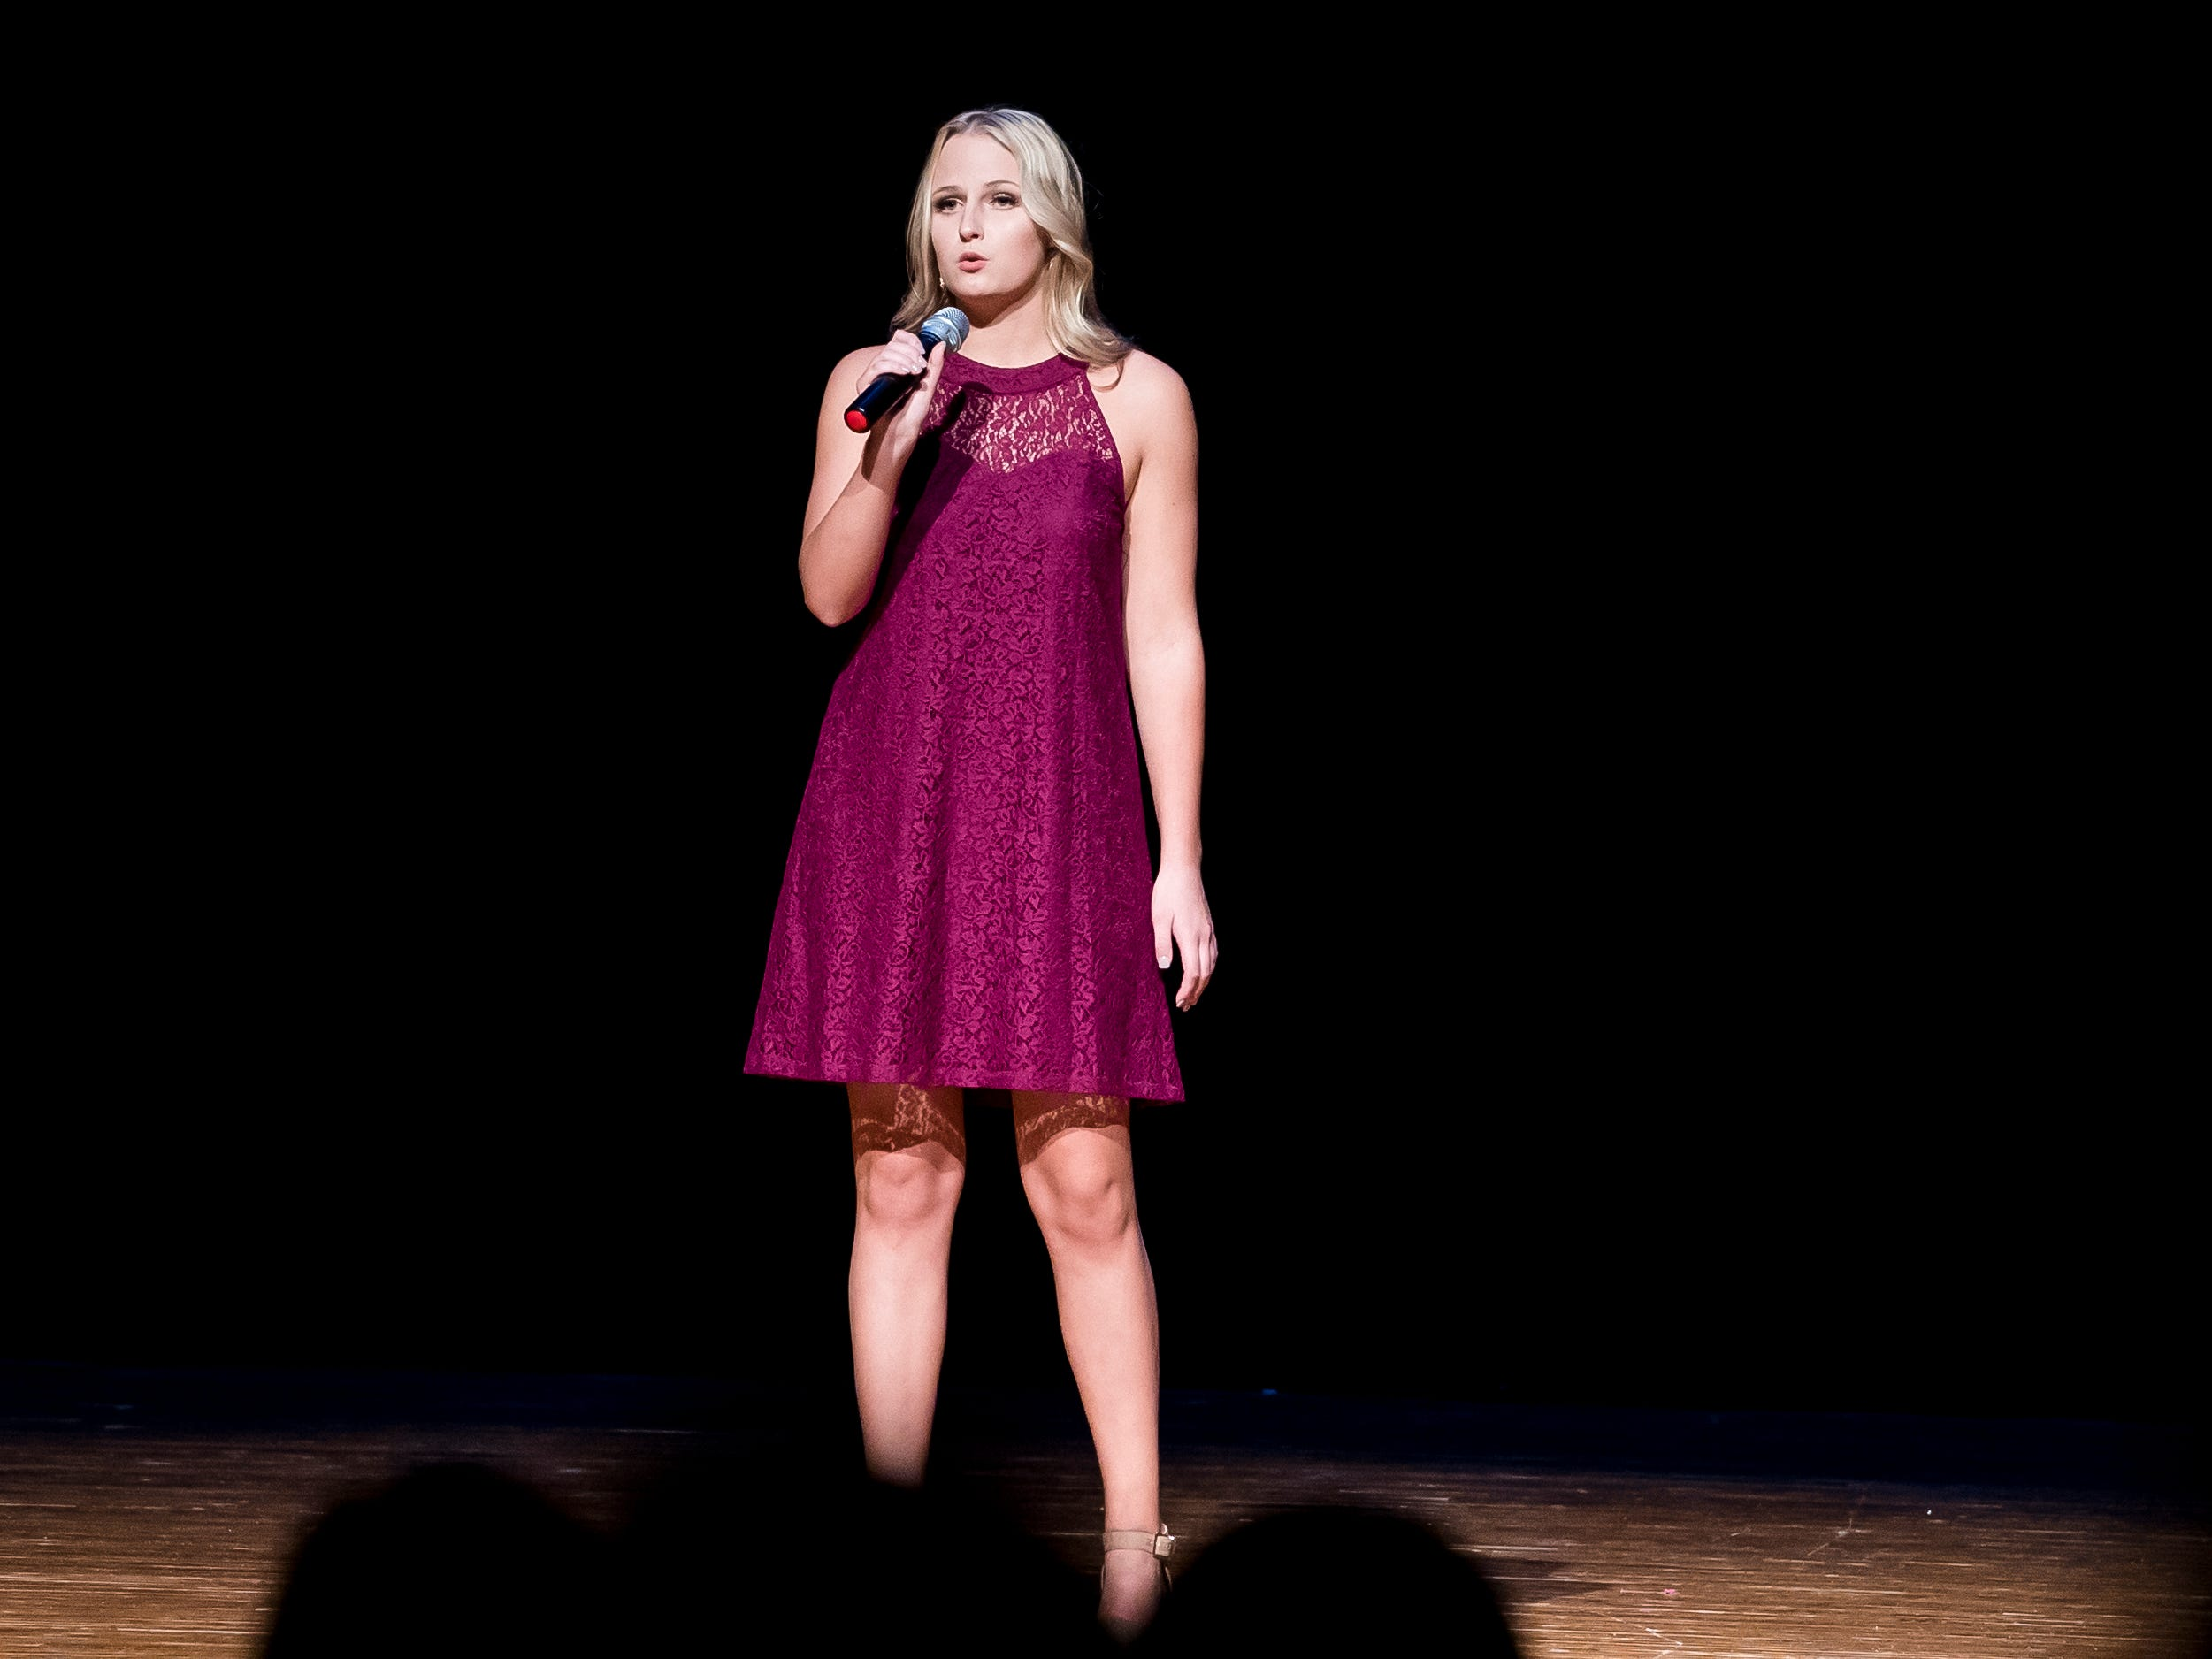 Cara Green sings during the talent competition at the 50th Miss Hanover Area pageant on Monday, October 22, 2018.